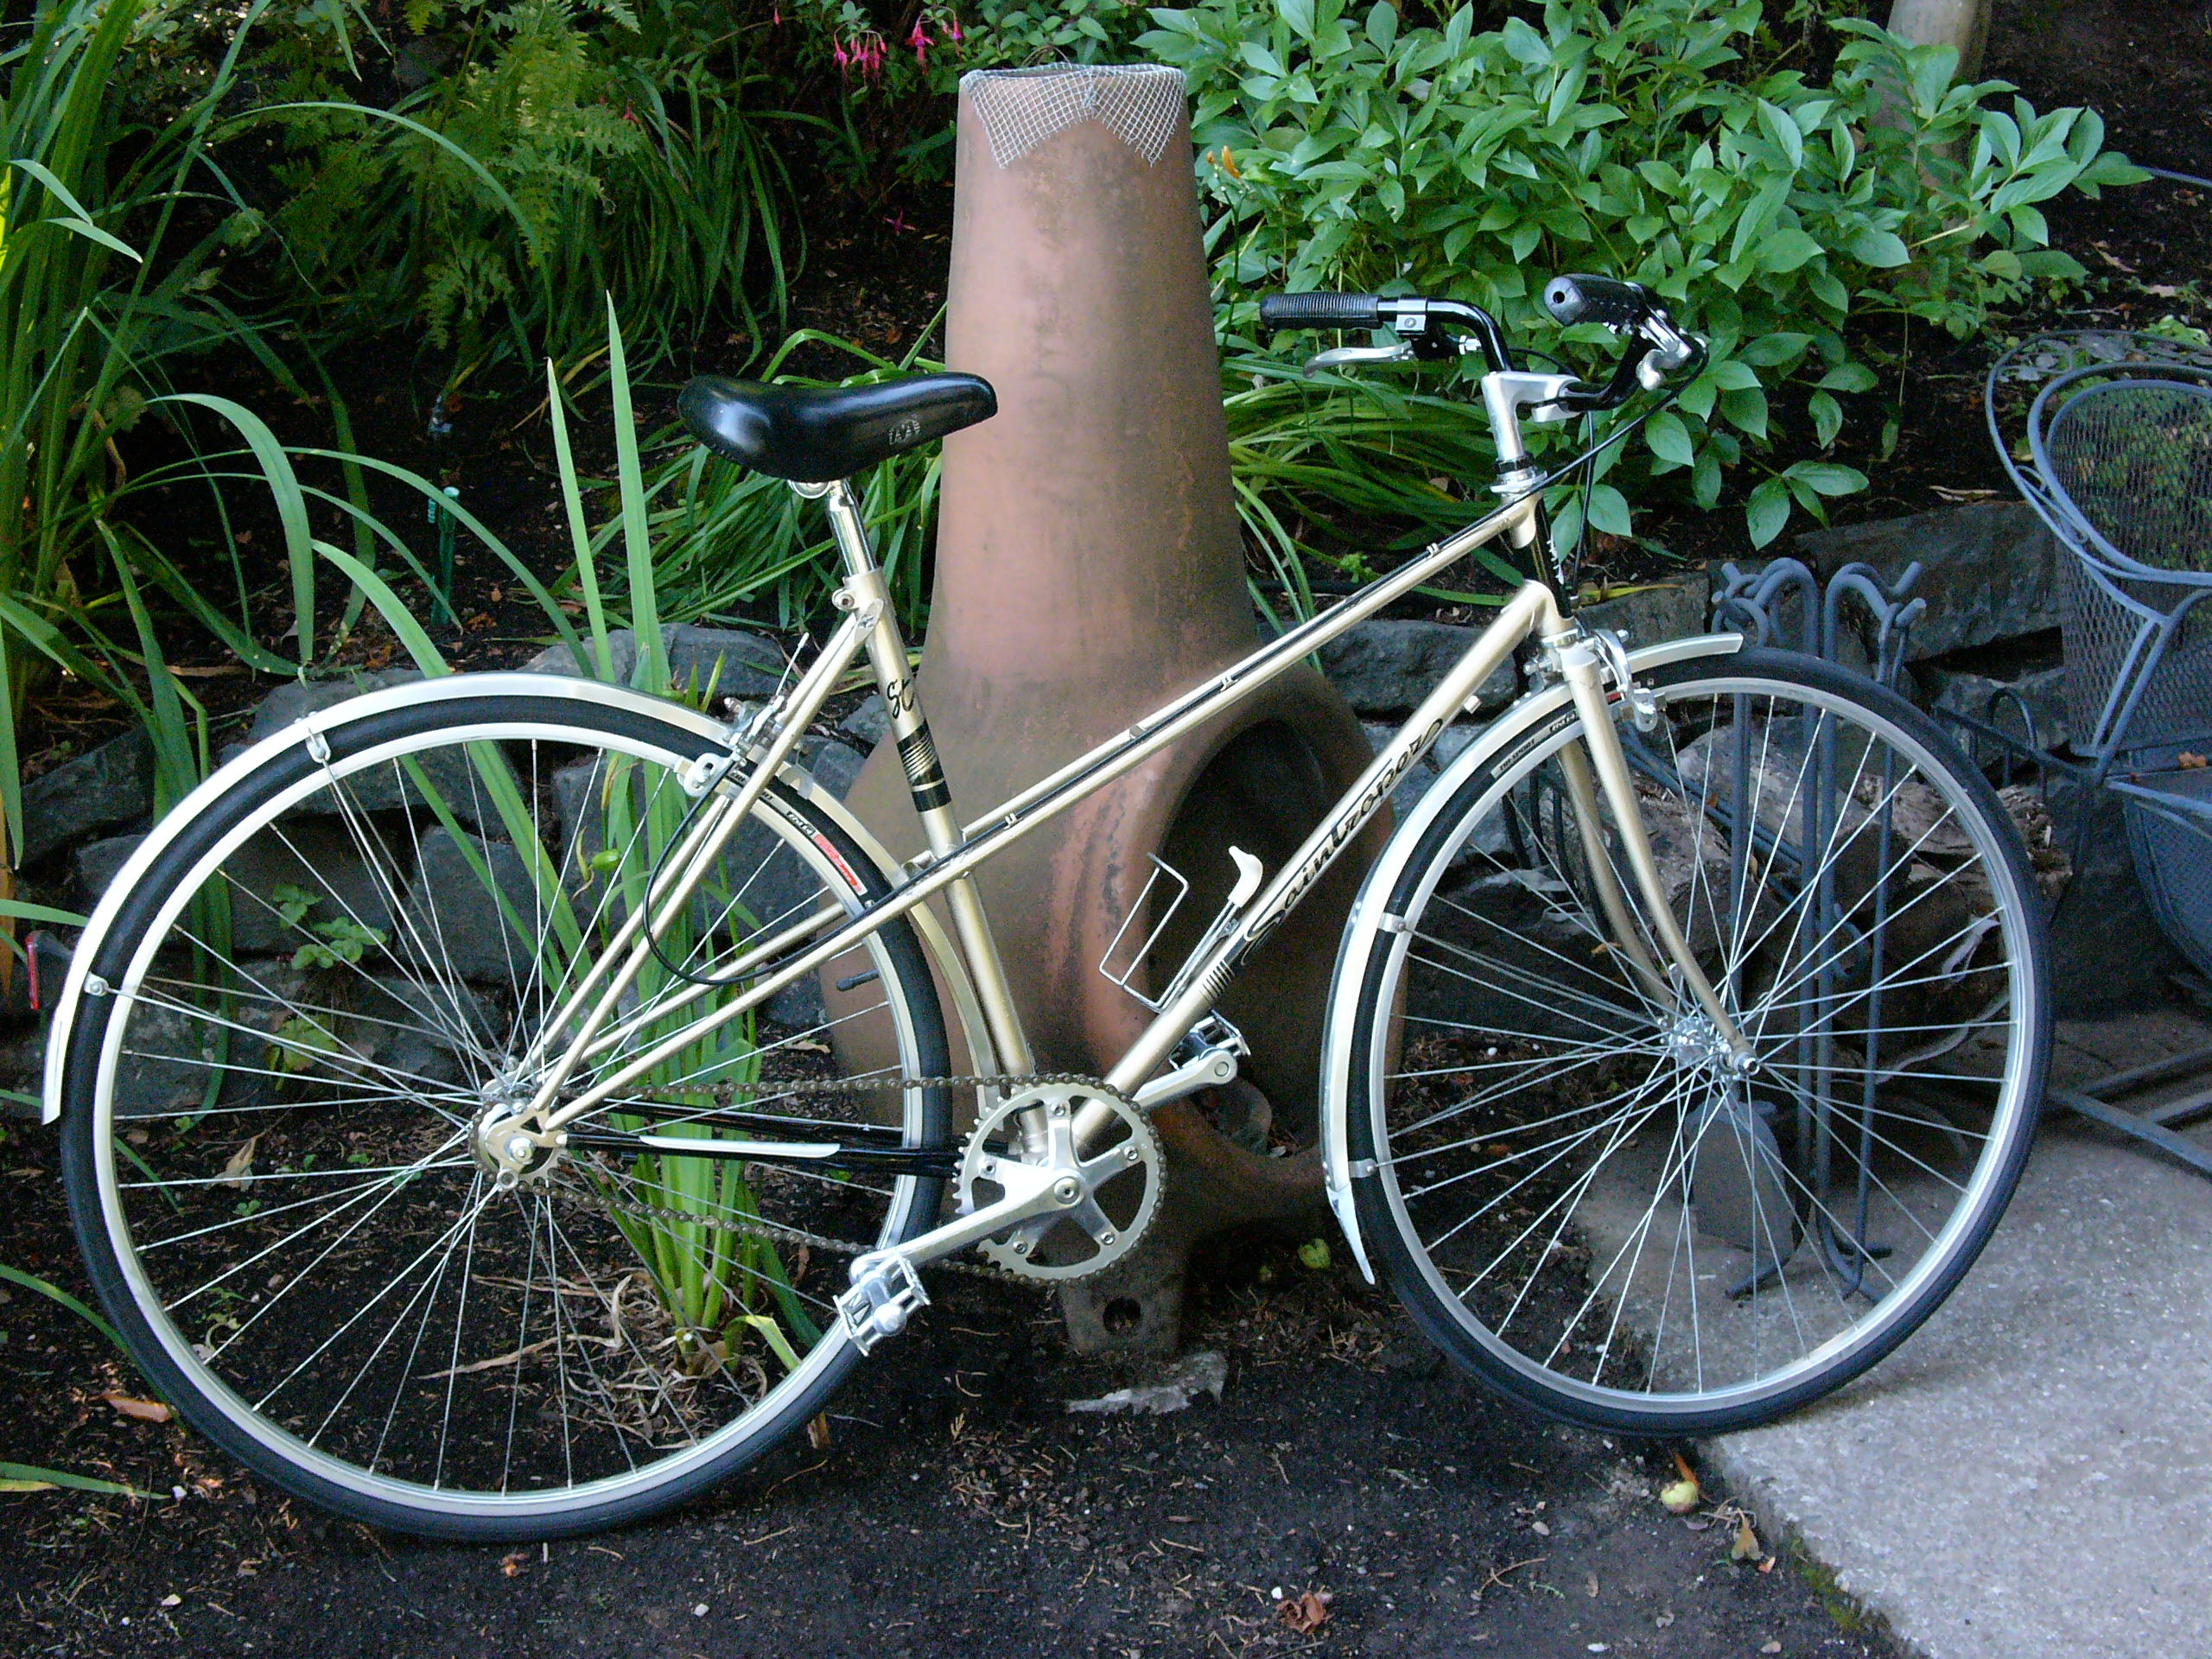 Restoring Vintage Bicycles From The Hand Built Era Portland